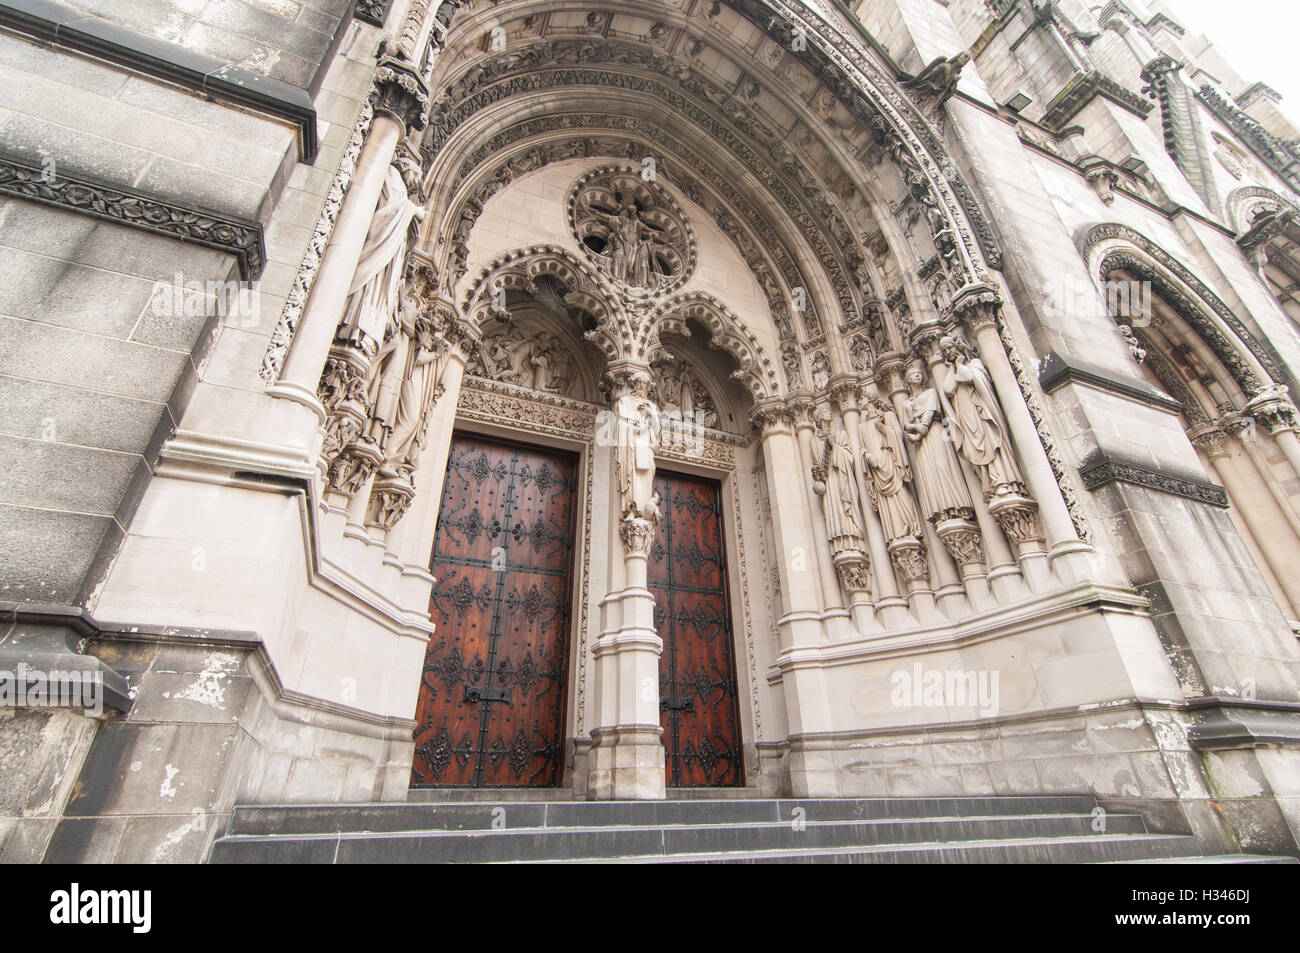 Doors of New York City cathedral St. John the Divine, New York - Stock Image